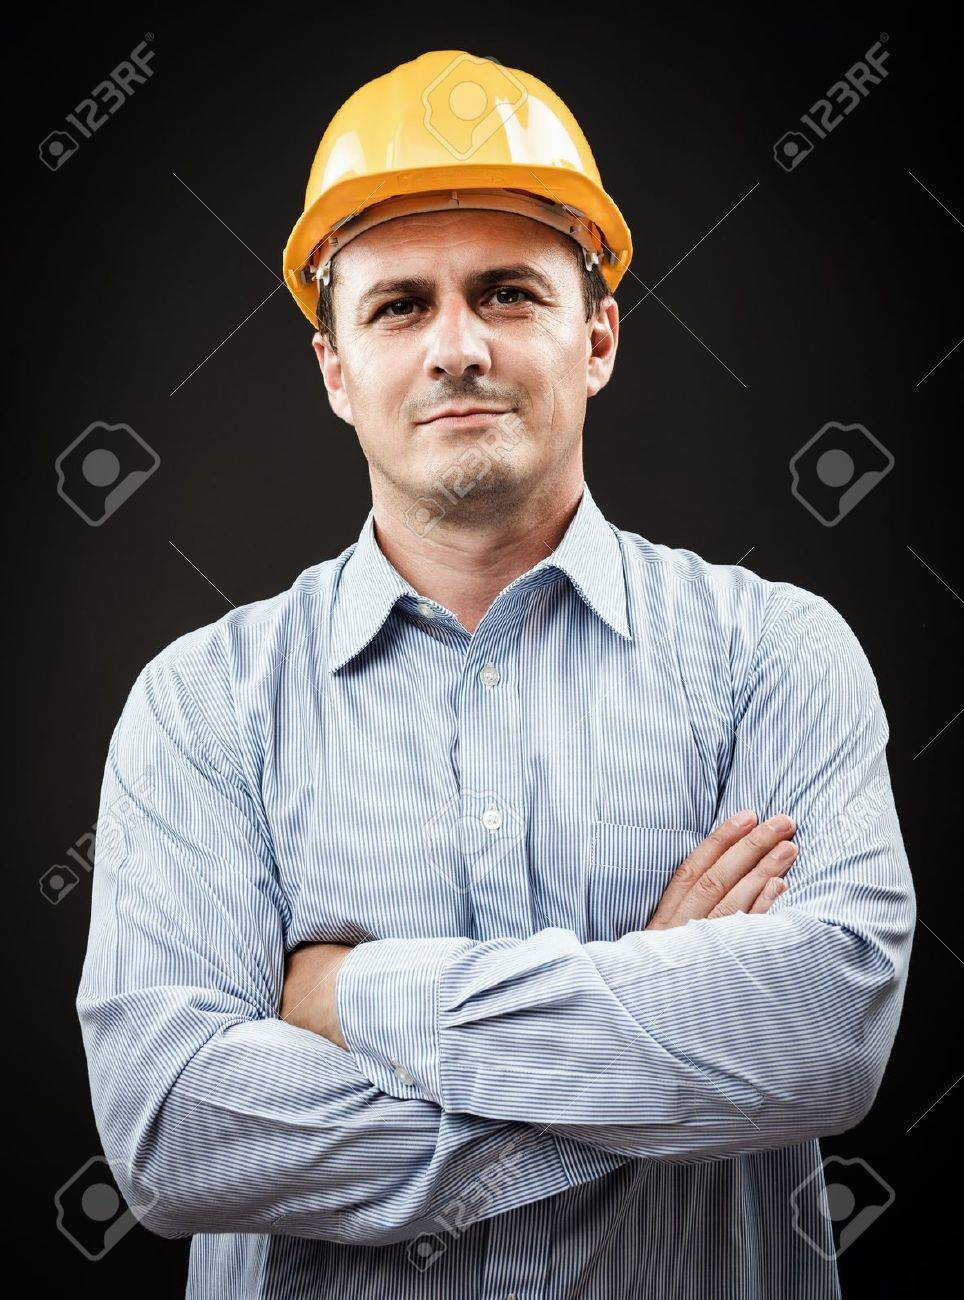 Young construction worker in hard hat on gray background Stock Photo - 15662324